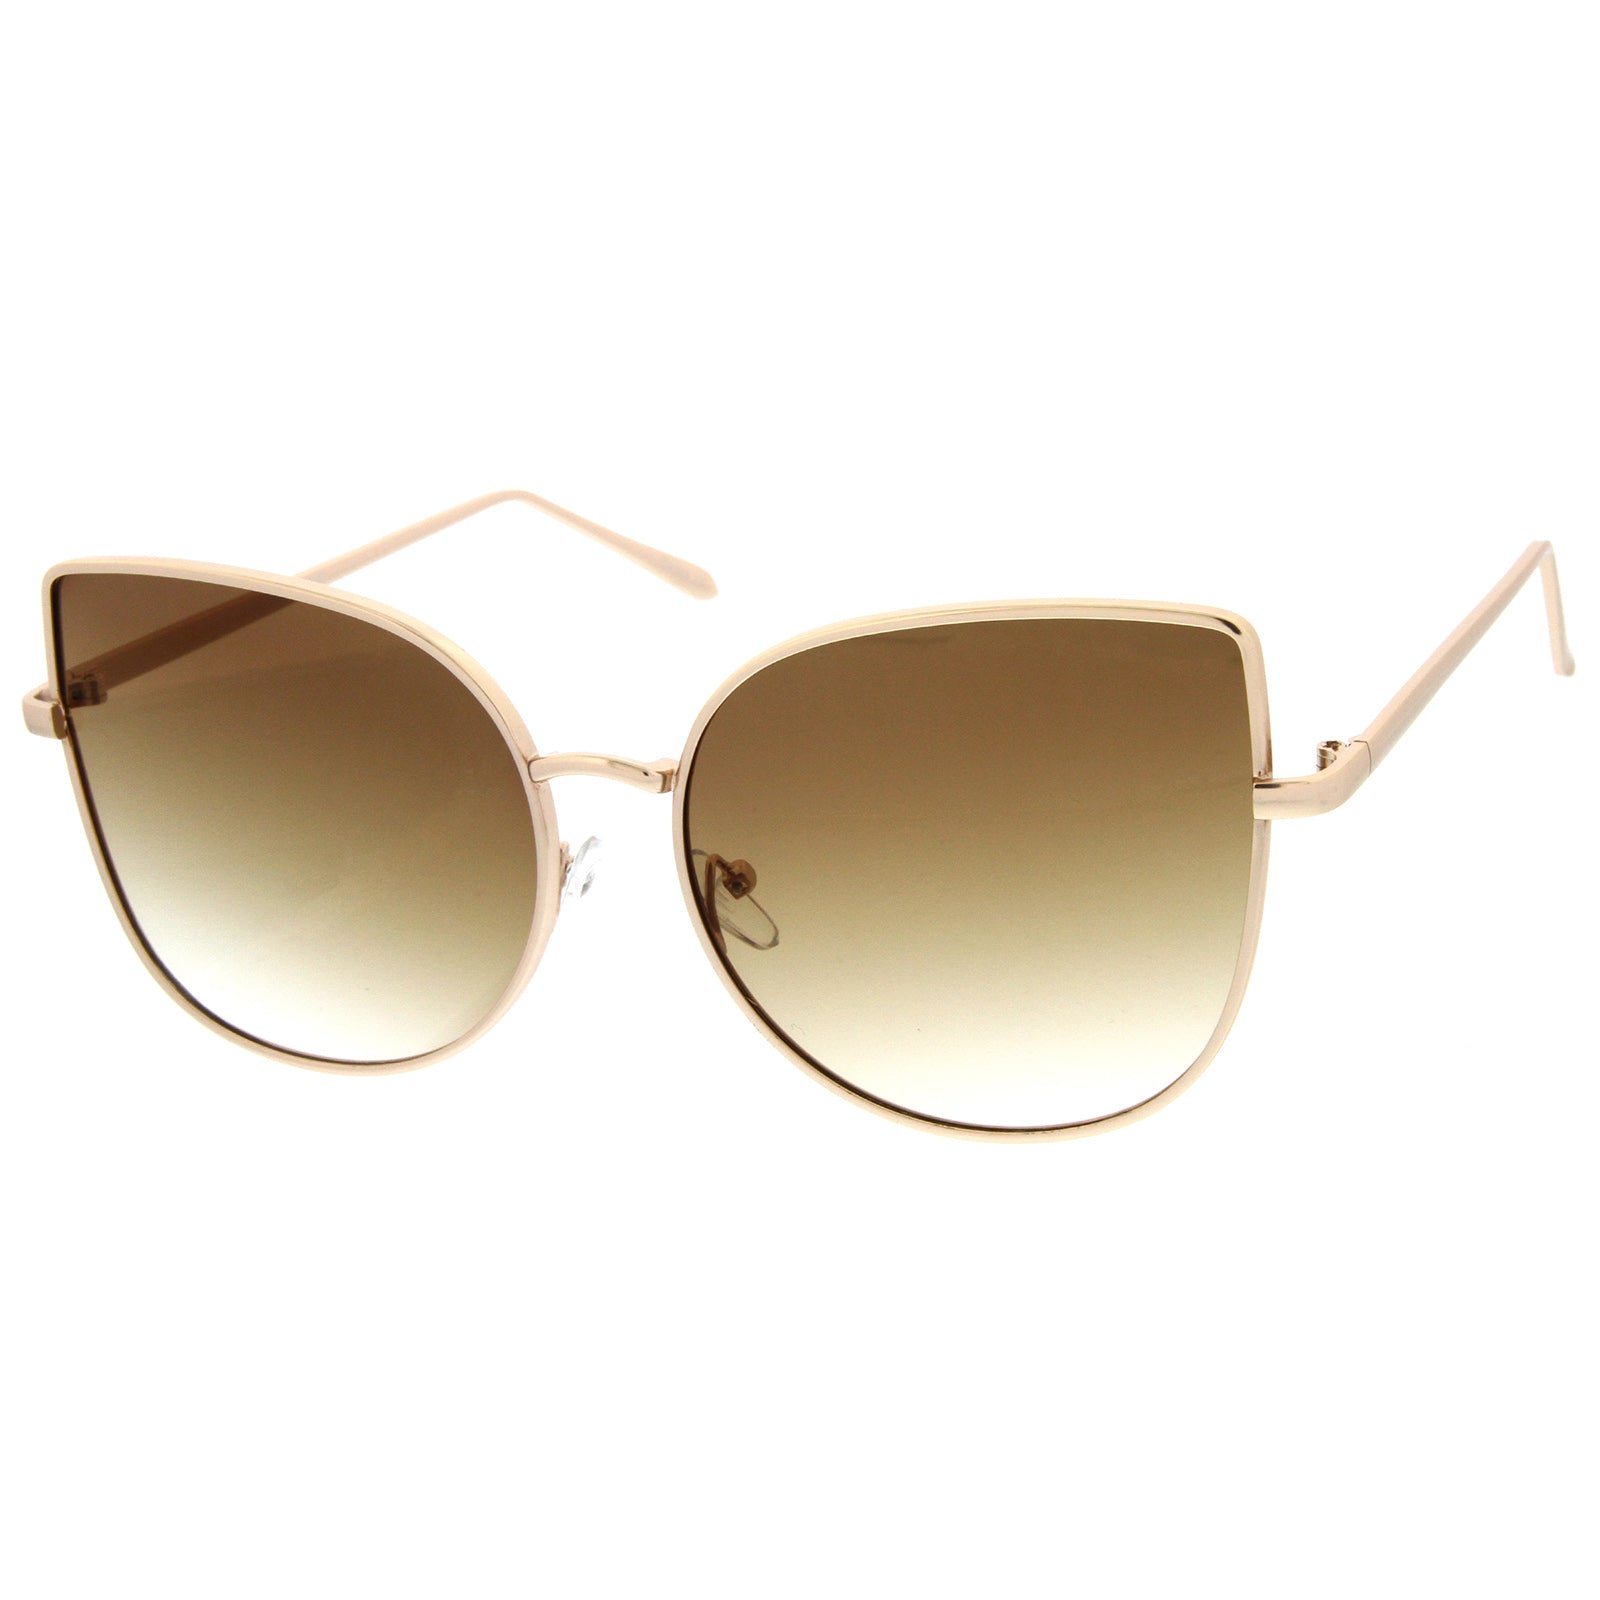 Women's Oversize Slim Metal Frame Gradient Flat Lens Cat Eye Sunglasses 58mm - sunglass.la - 2